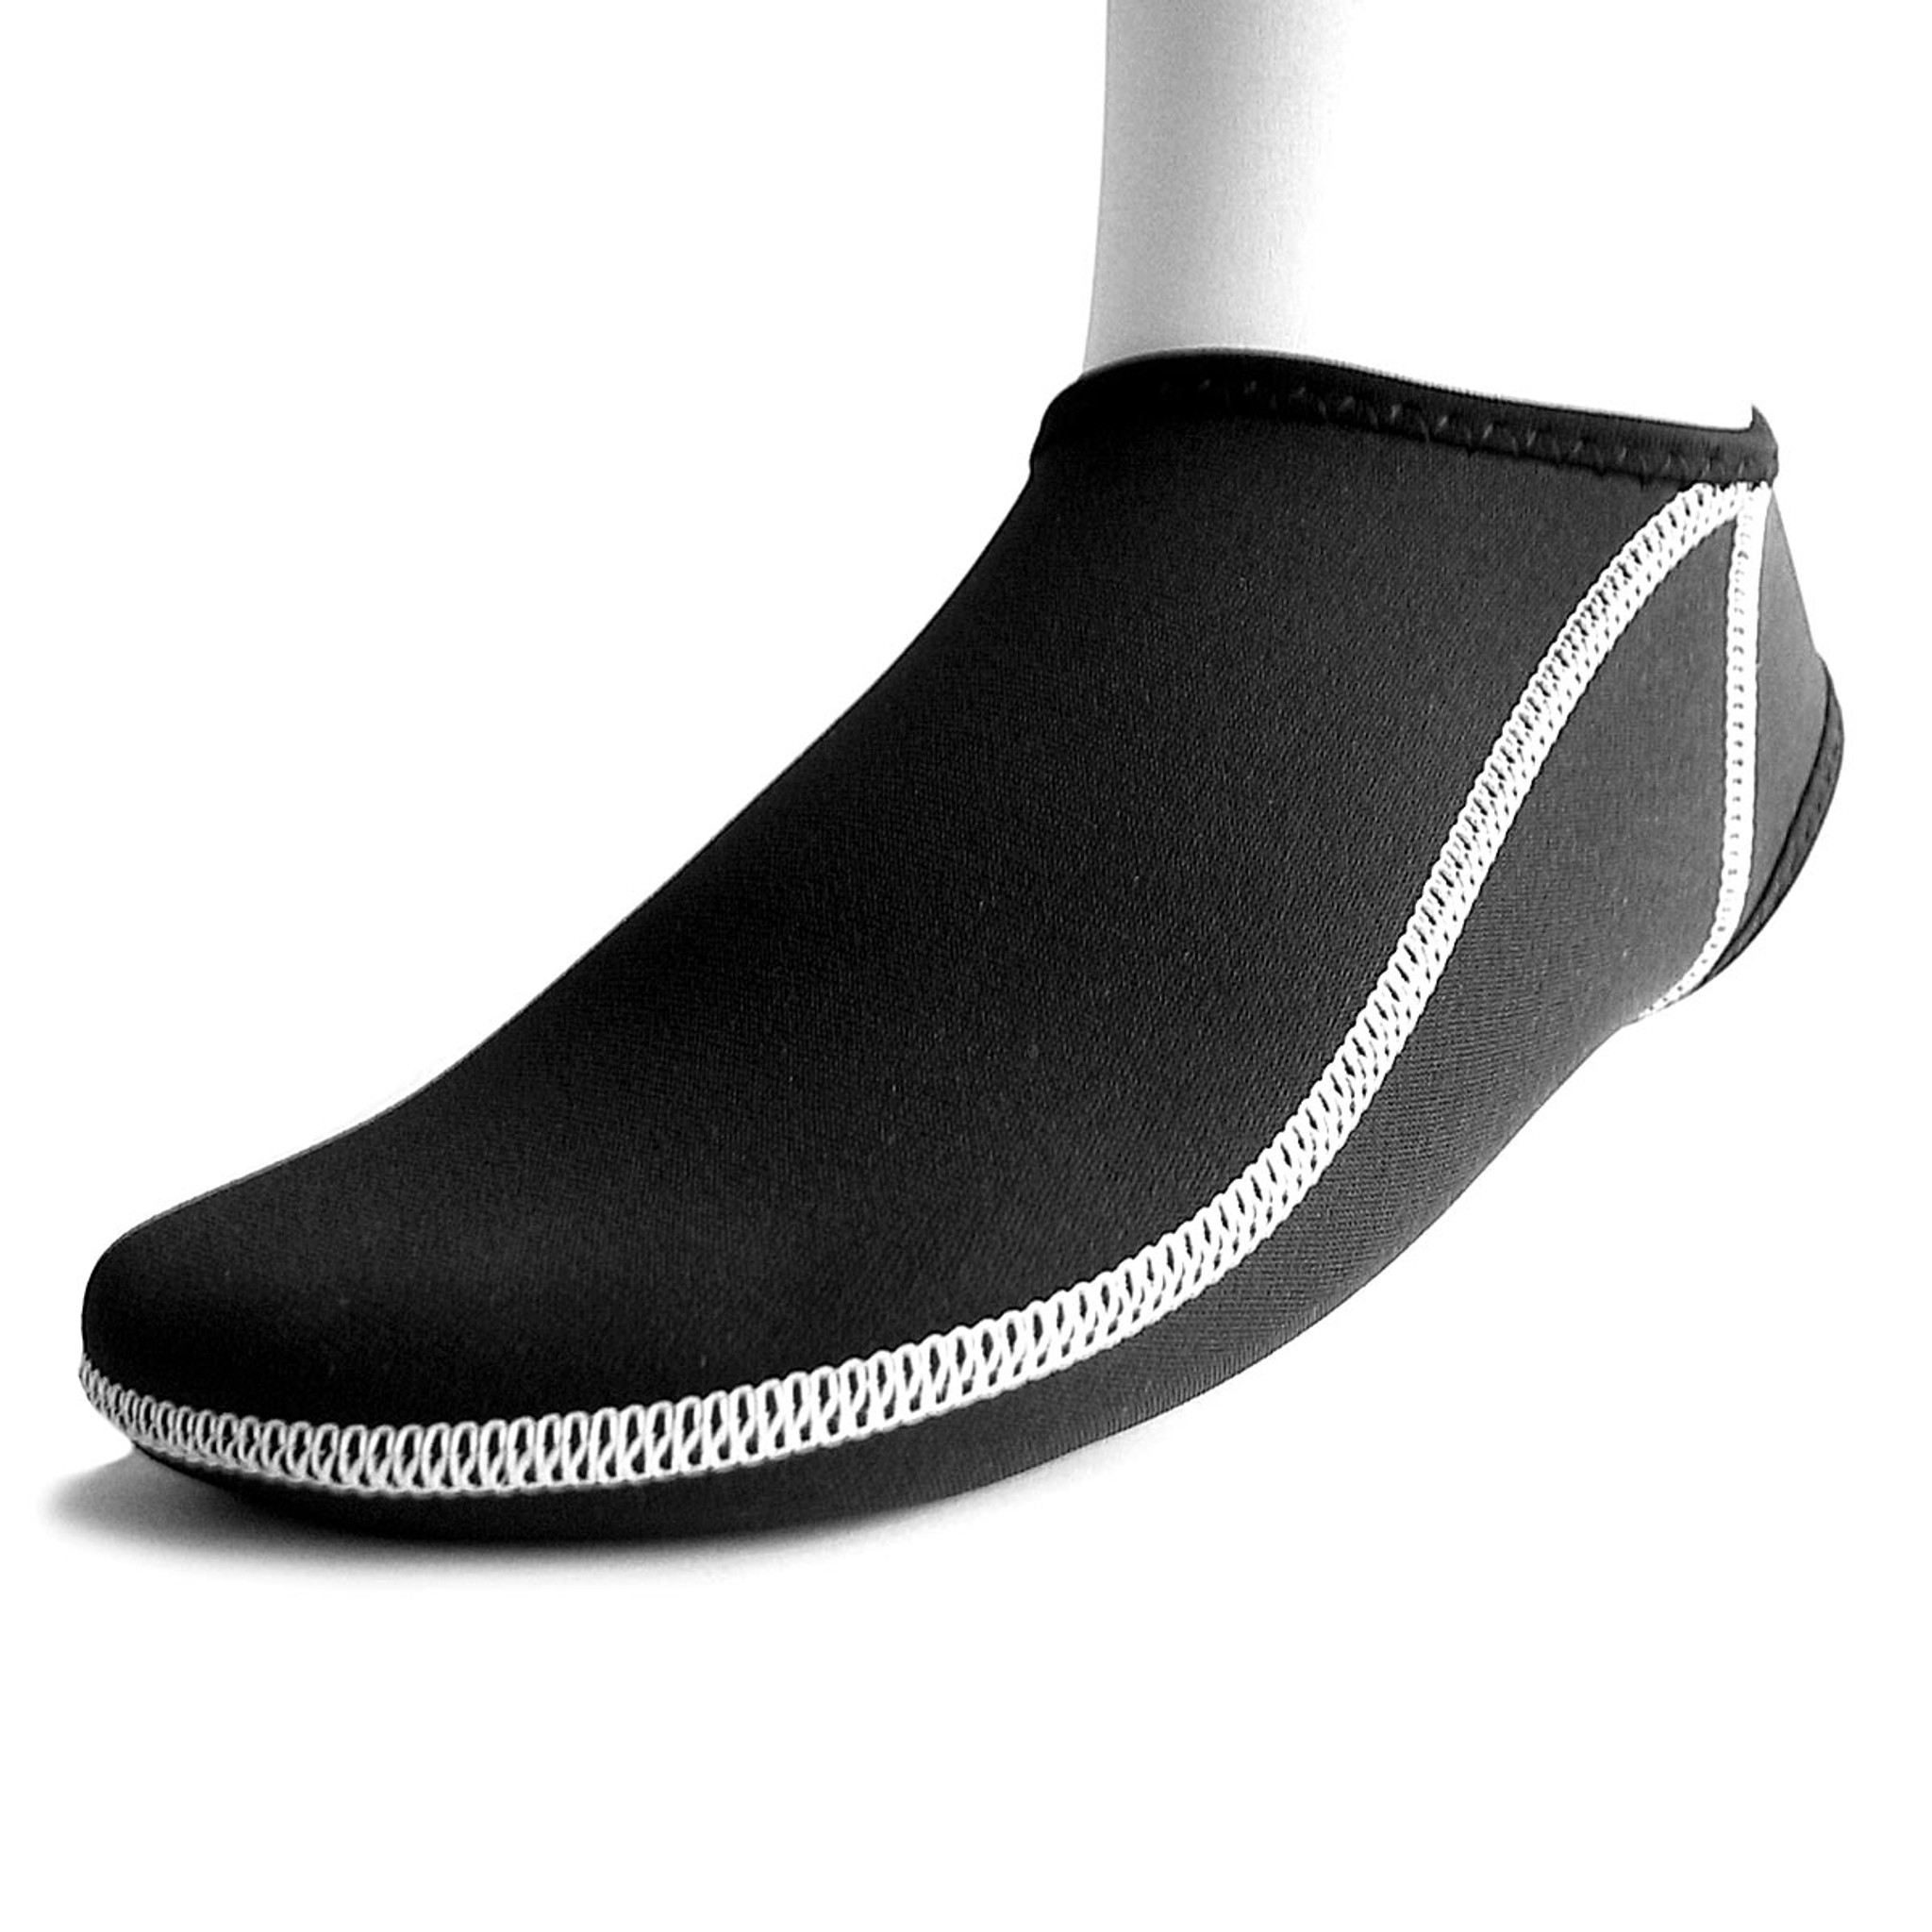 POD Swim Fins PF2 - Neoprene Socks - Fins Savers